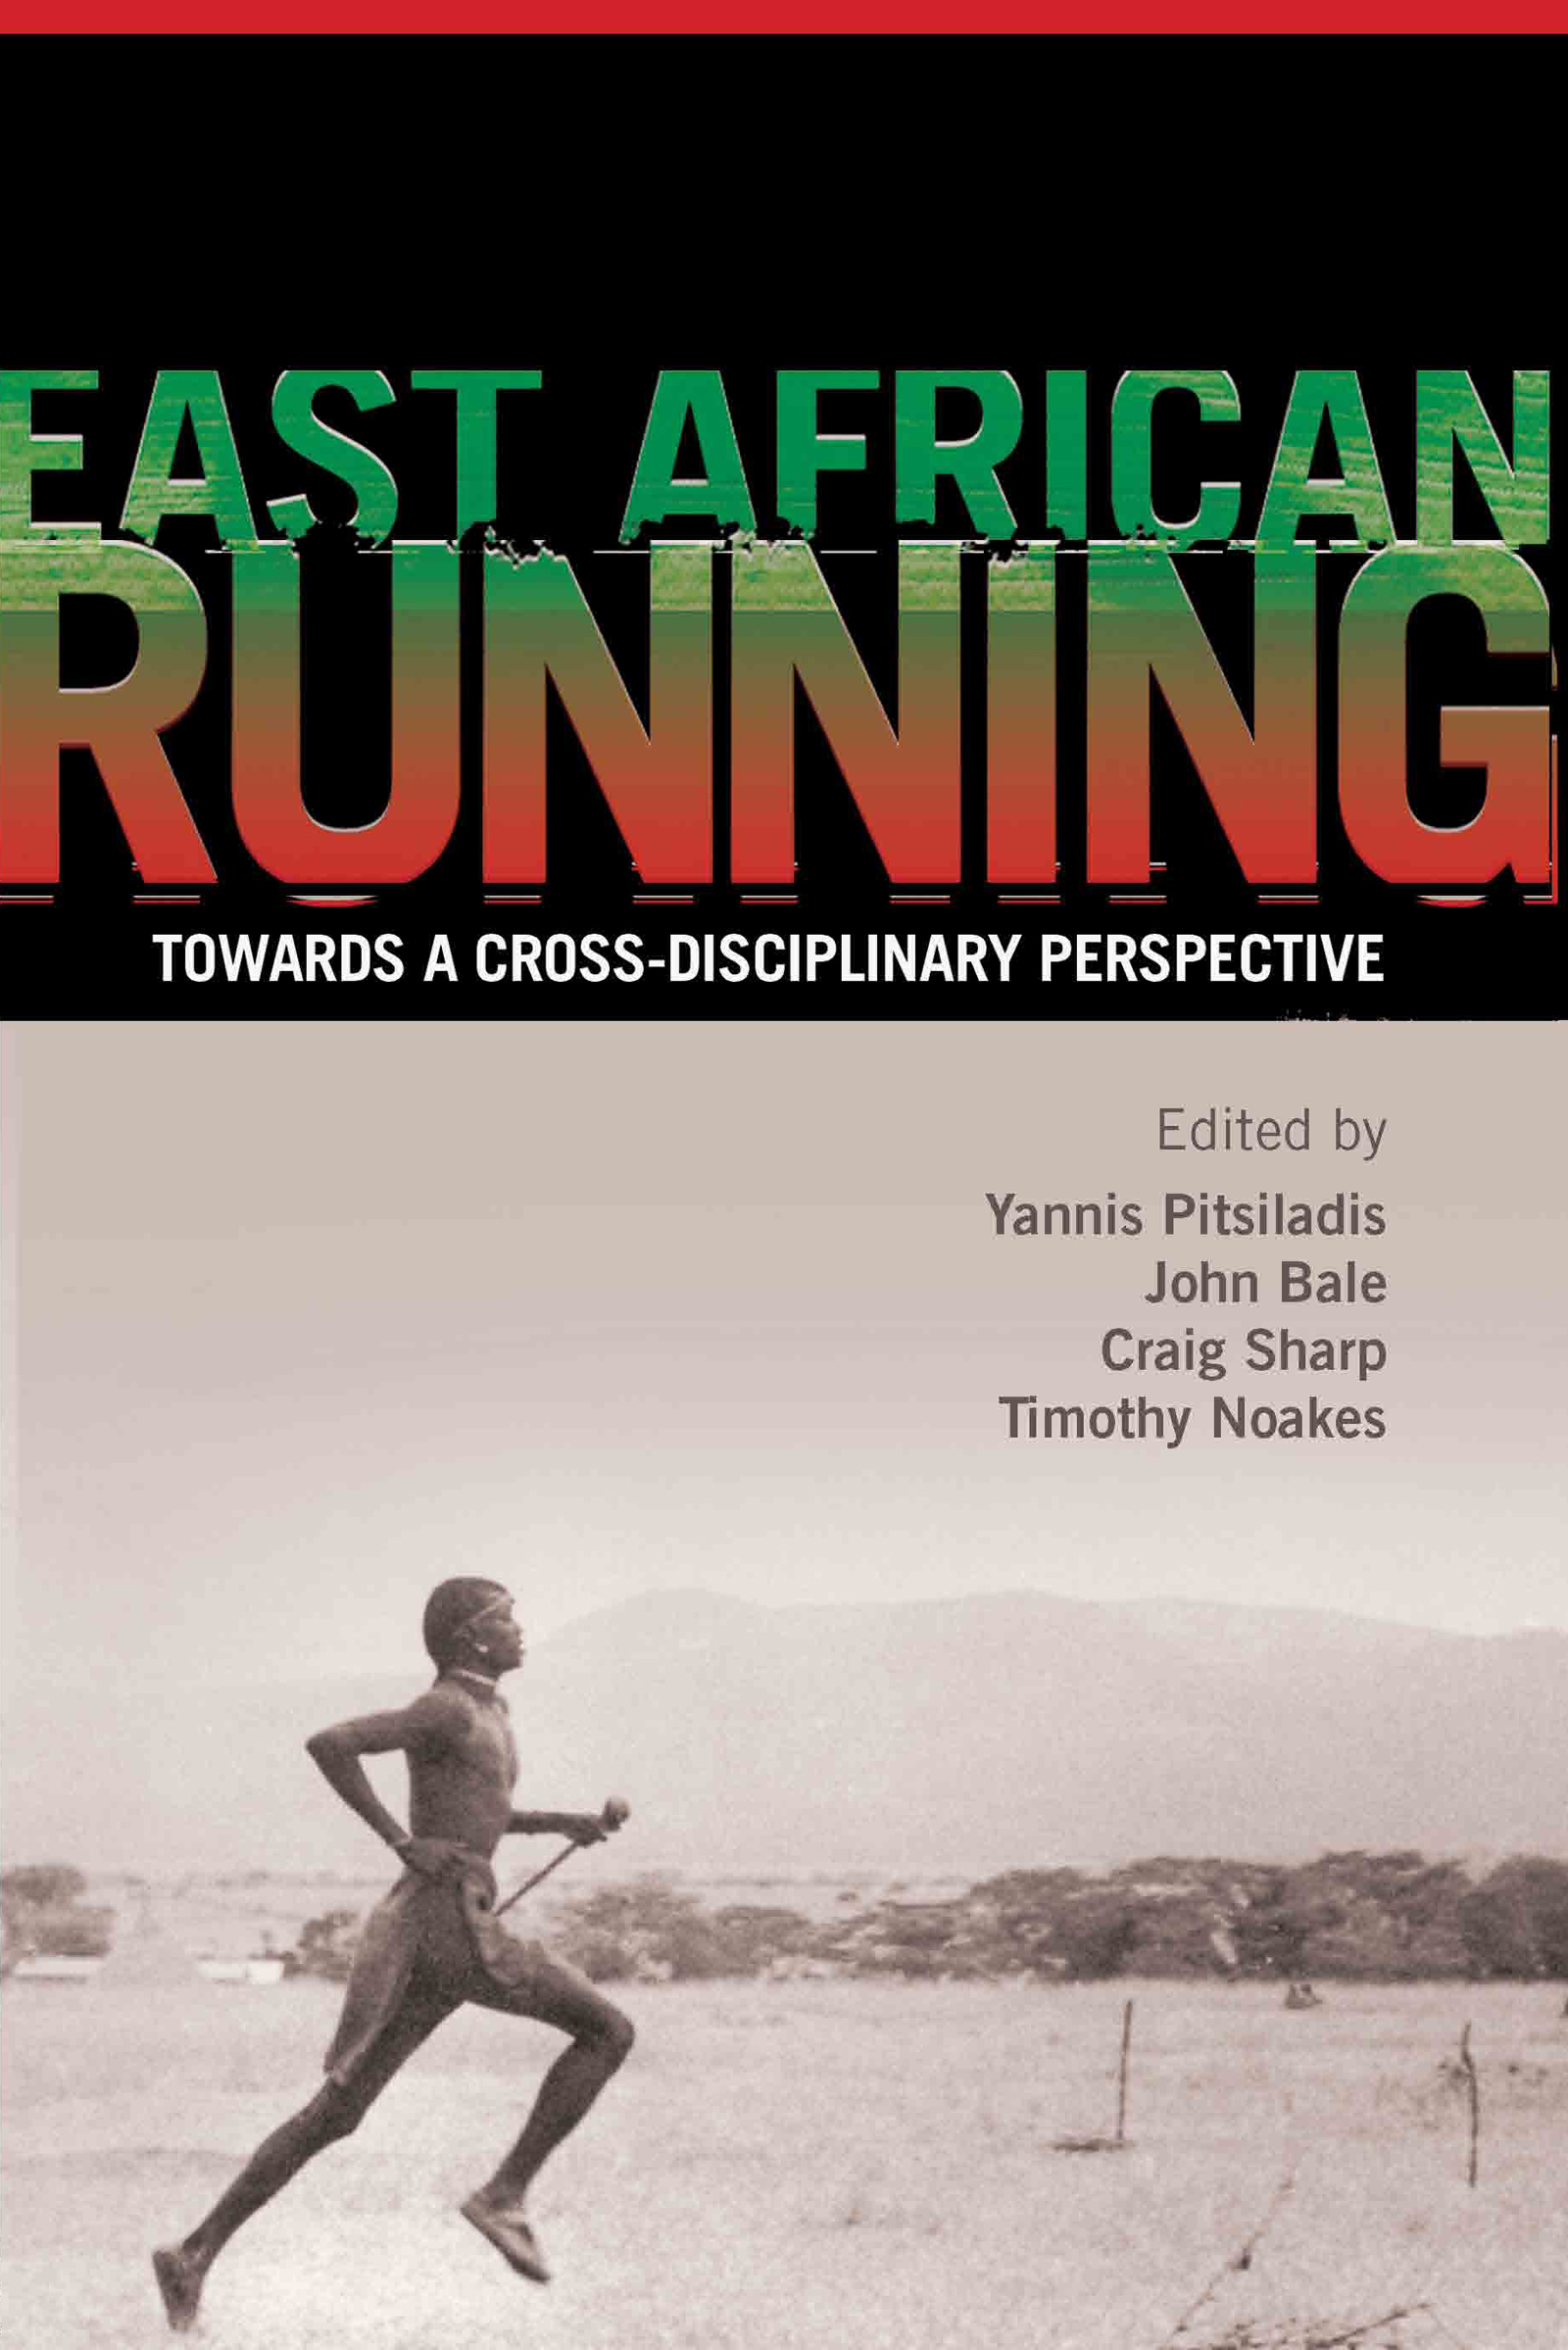 East African Running: Toward a Cross-Disciplinary Perspective book cover